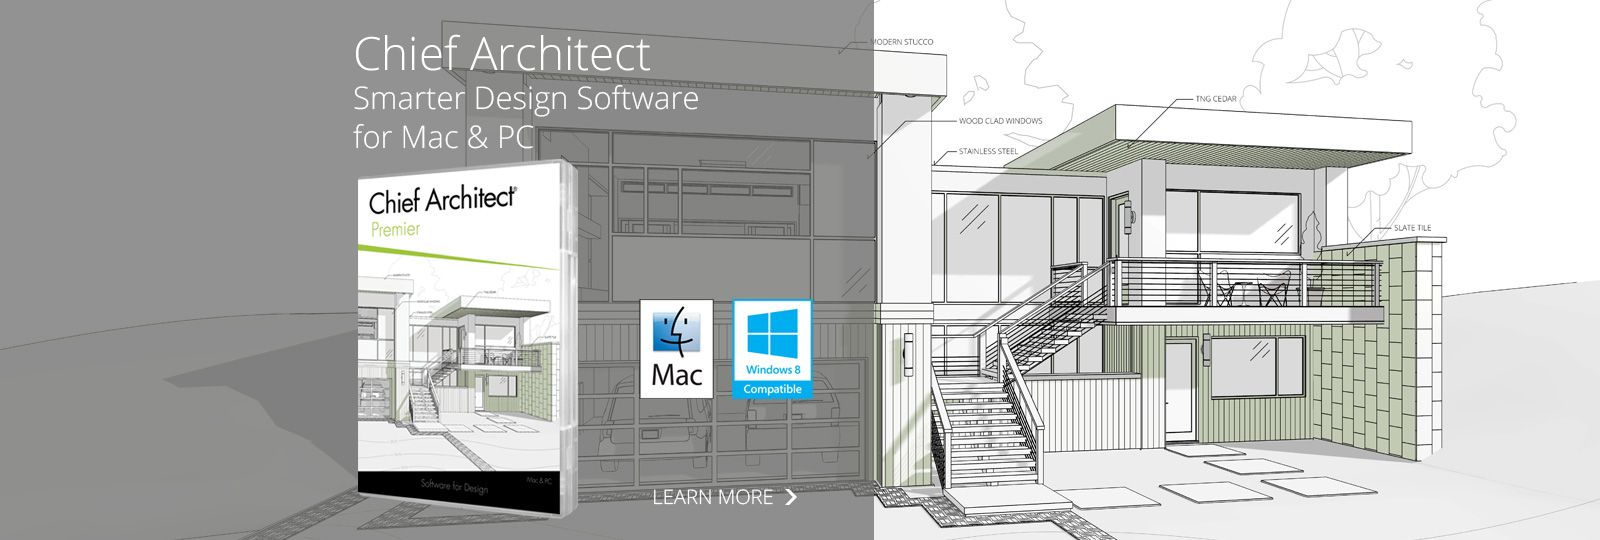 Chief Architect U2014 Professional 3D Architectural Home Design Software.  Automated Building Tools Make Home Design